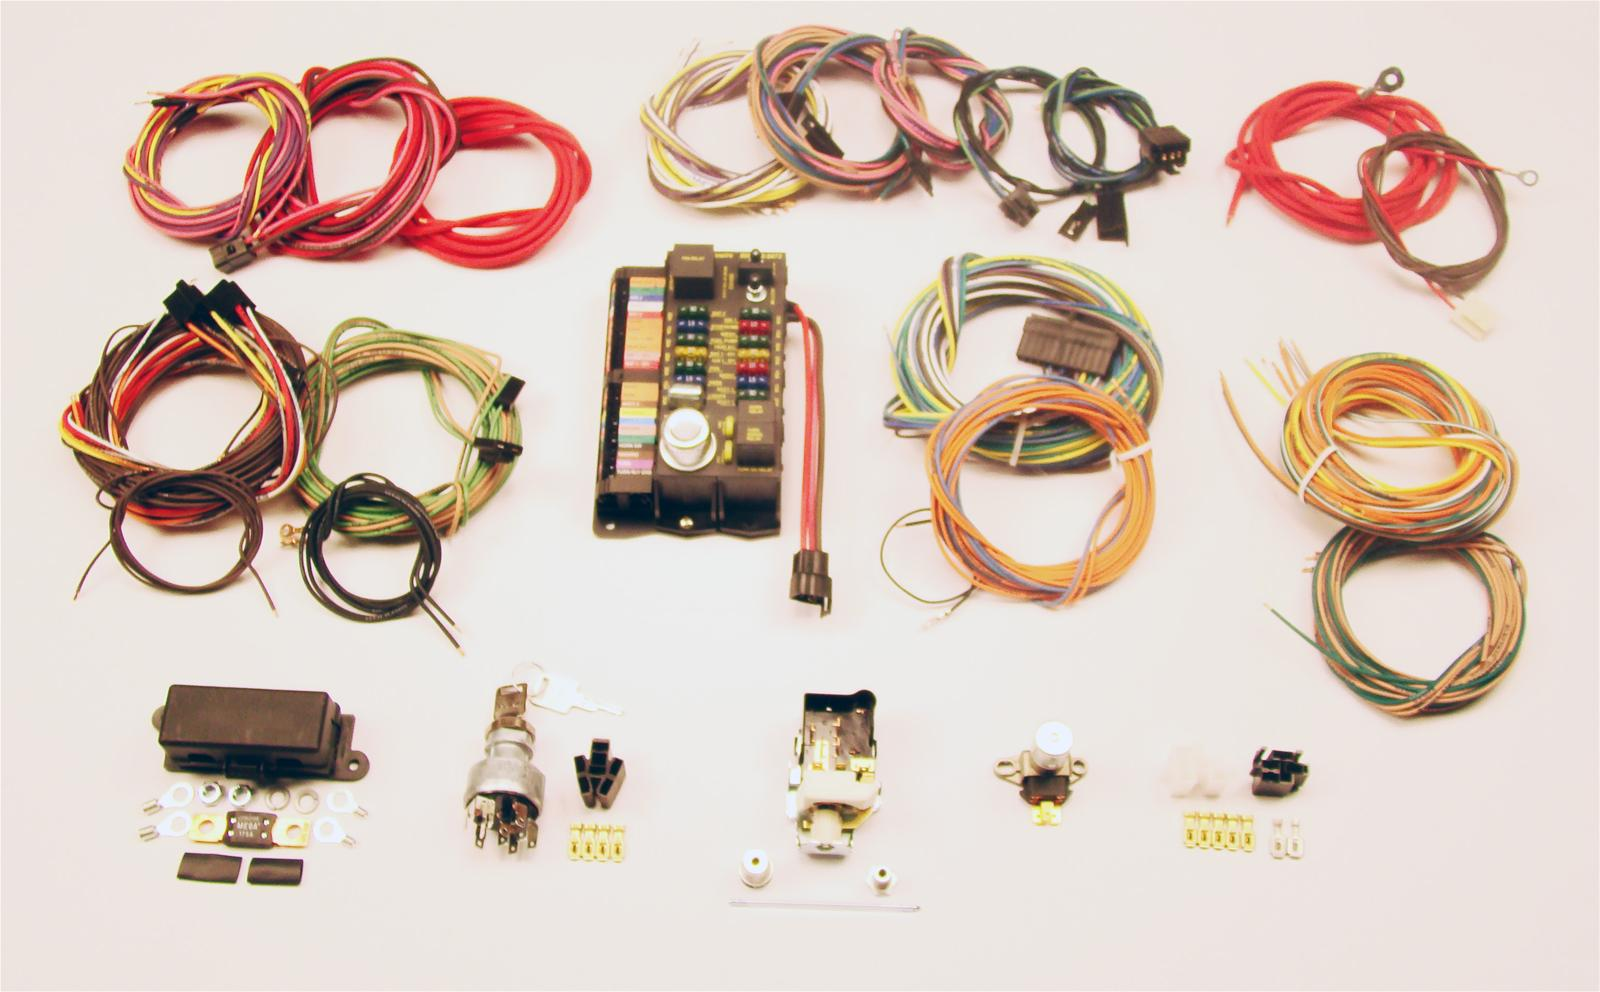 AWW 500695_xl american autowire highway 22 wiring harness kits 500695 free highway 22 wiring diagram at aneh.co